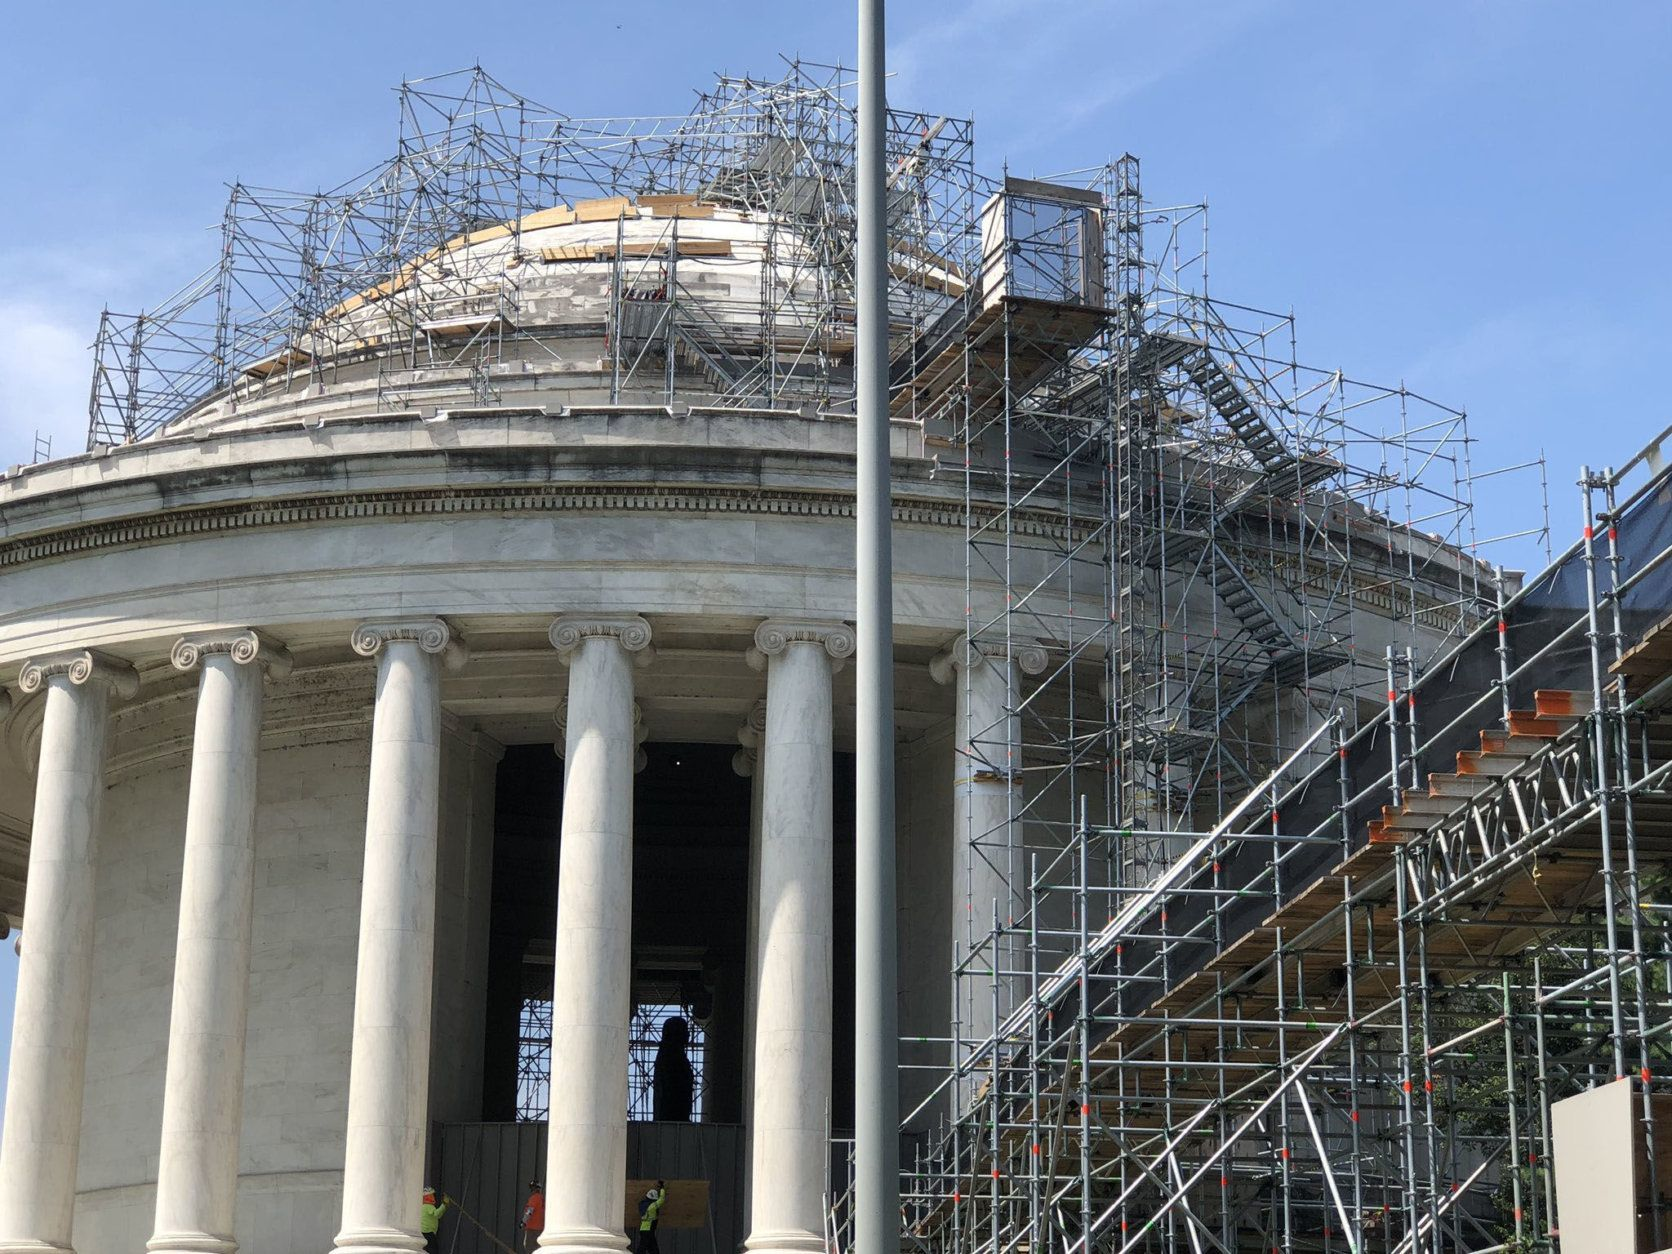 <p>The Thomas Jefferson Memorial is undergoing a major restoration project to address clogged drains, leaky roofs, crumbling stone and a peculiar growth that&#8217;s discoloring its magnificent white marble. And the effort to clean the 1943 memorial includes lasers.</p>